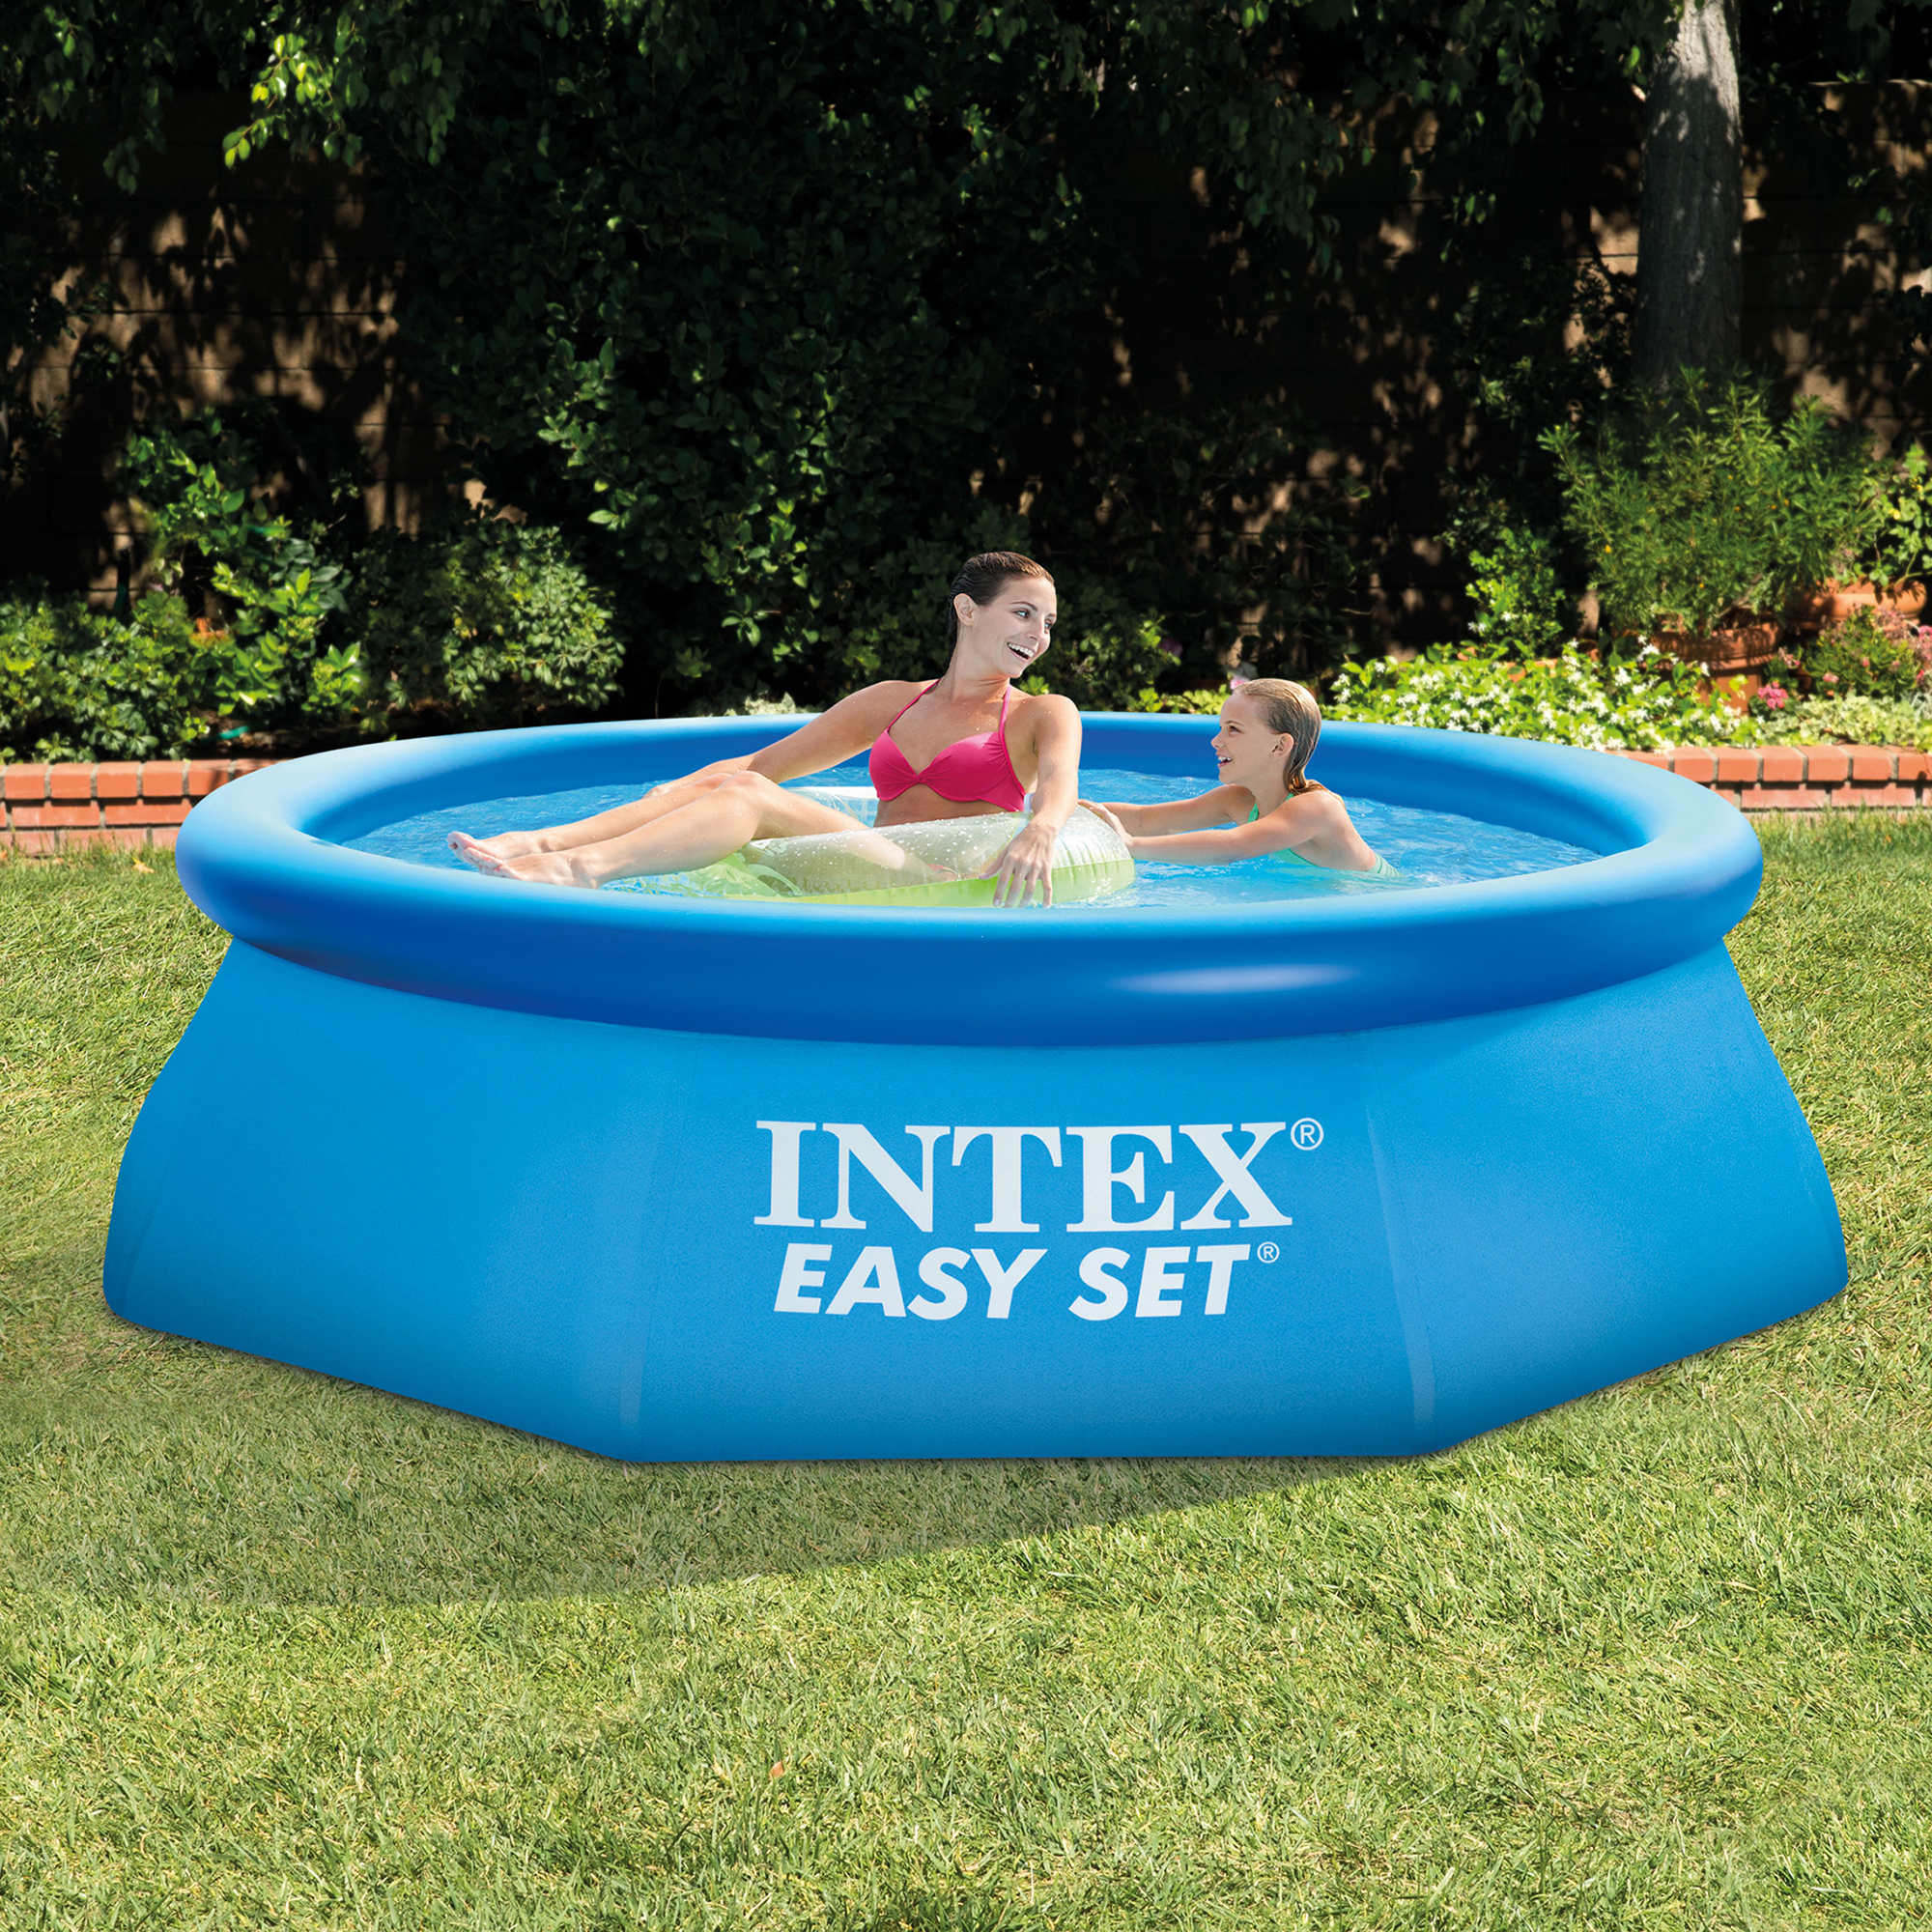 intex 8 39 x 30 easy set swimming pool 330 gph gfci filter pump 28111eh ebay. Black Bedroom Furniture Sets. Home Design Ideas